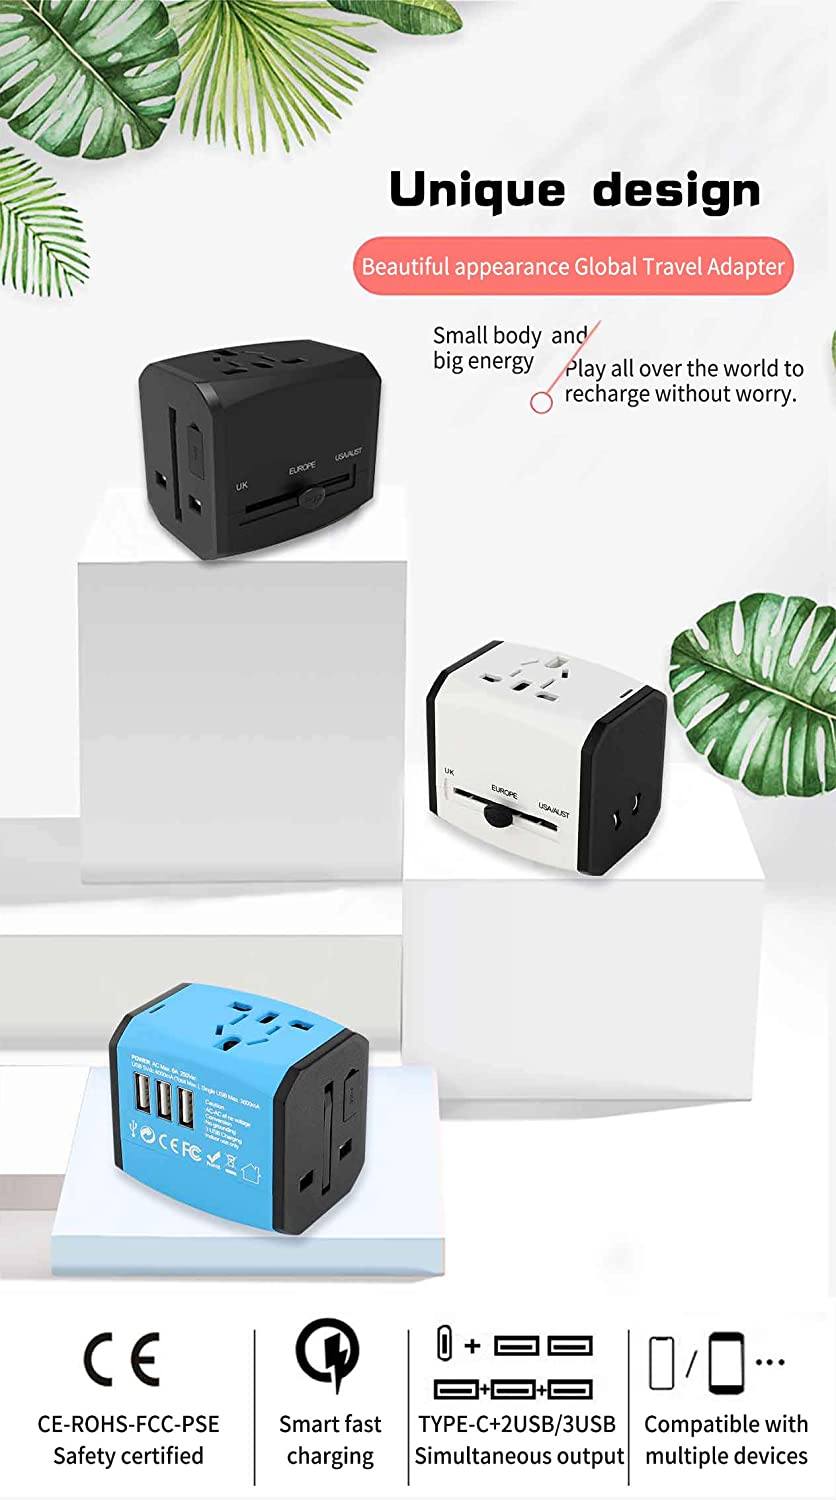 1 AC Plug Suit for US EU UK AUS,Over 150 Countries Travel Accessories 525, White AIAI International Travel Adapter 2500w,Worldwide All in One Universal Travel Adapter with 3 USB Ports